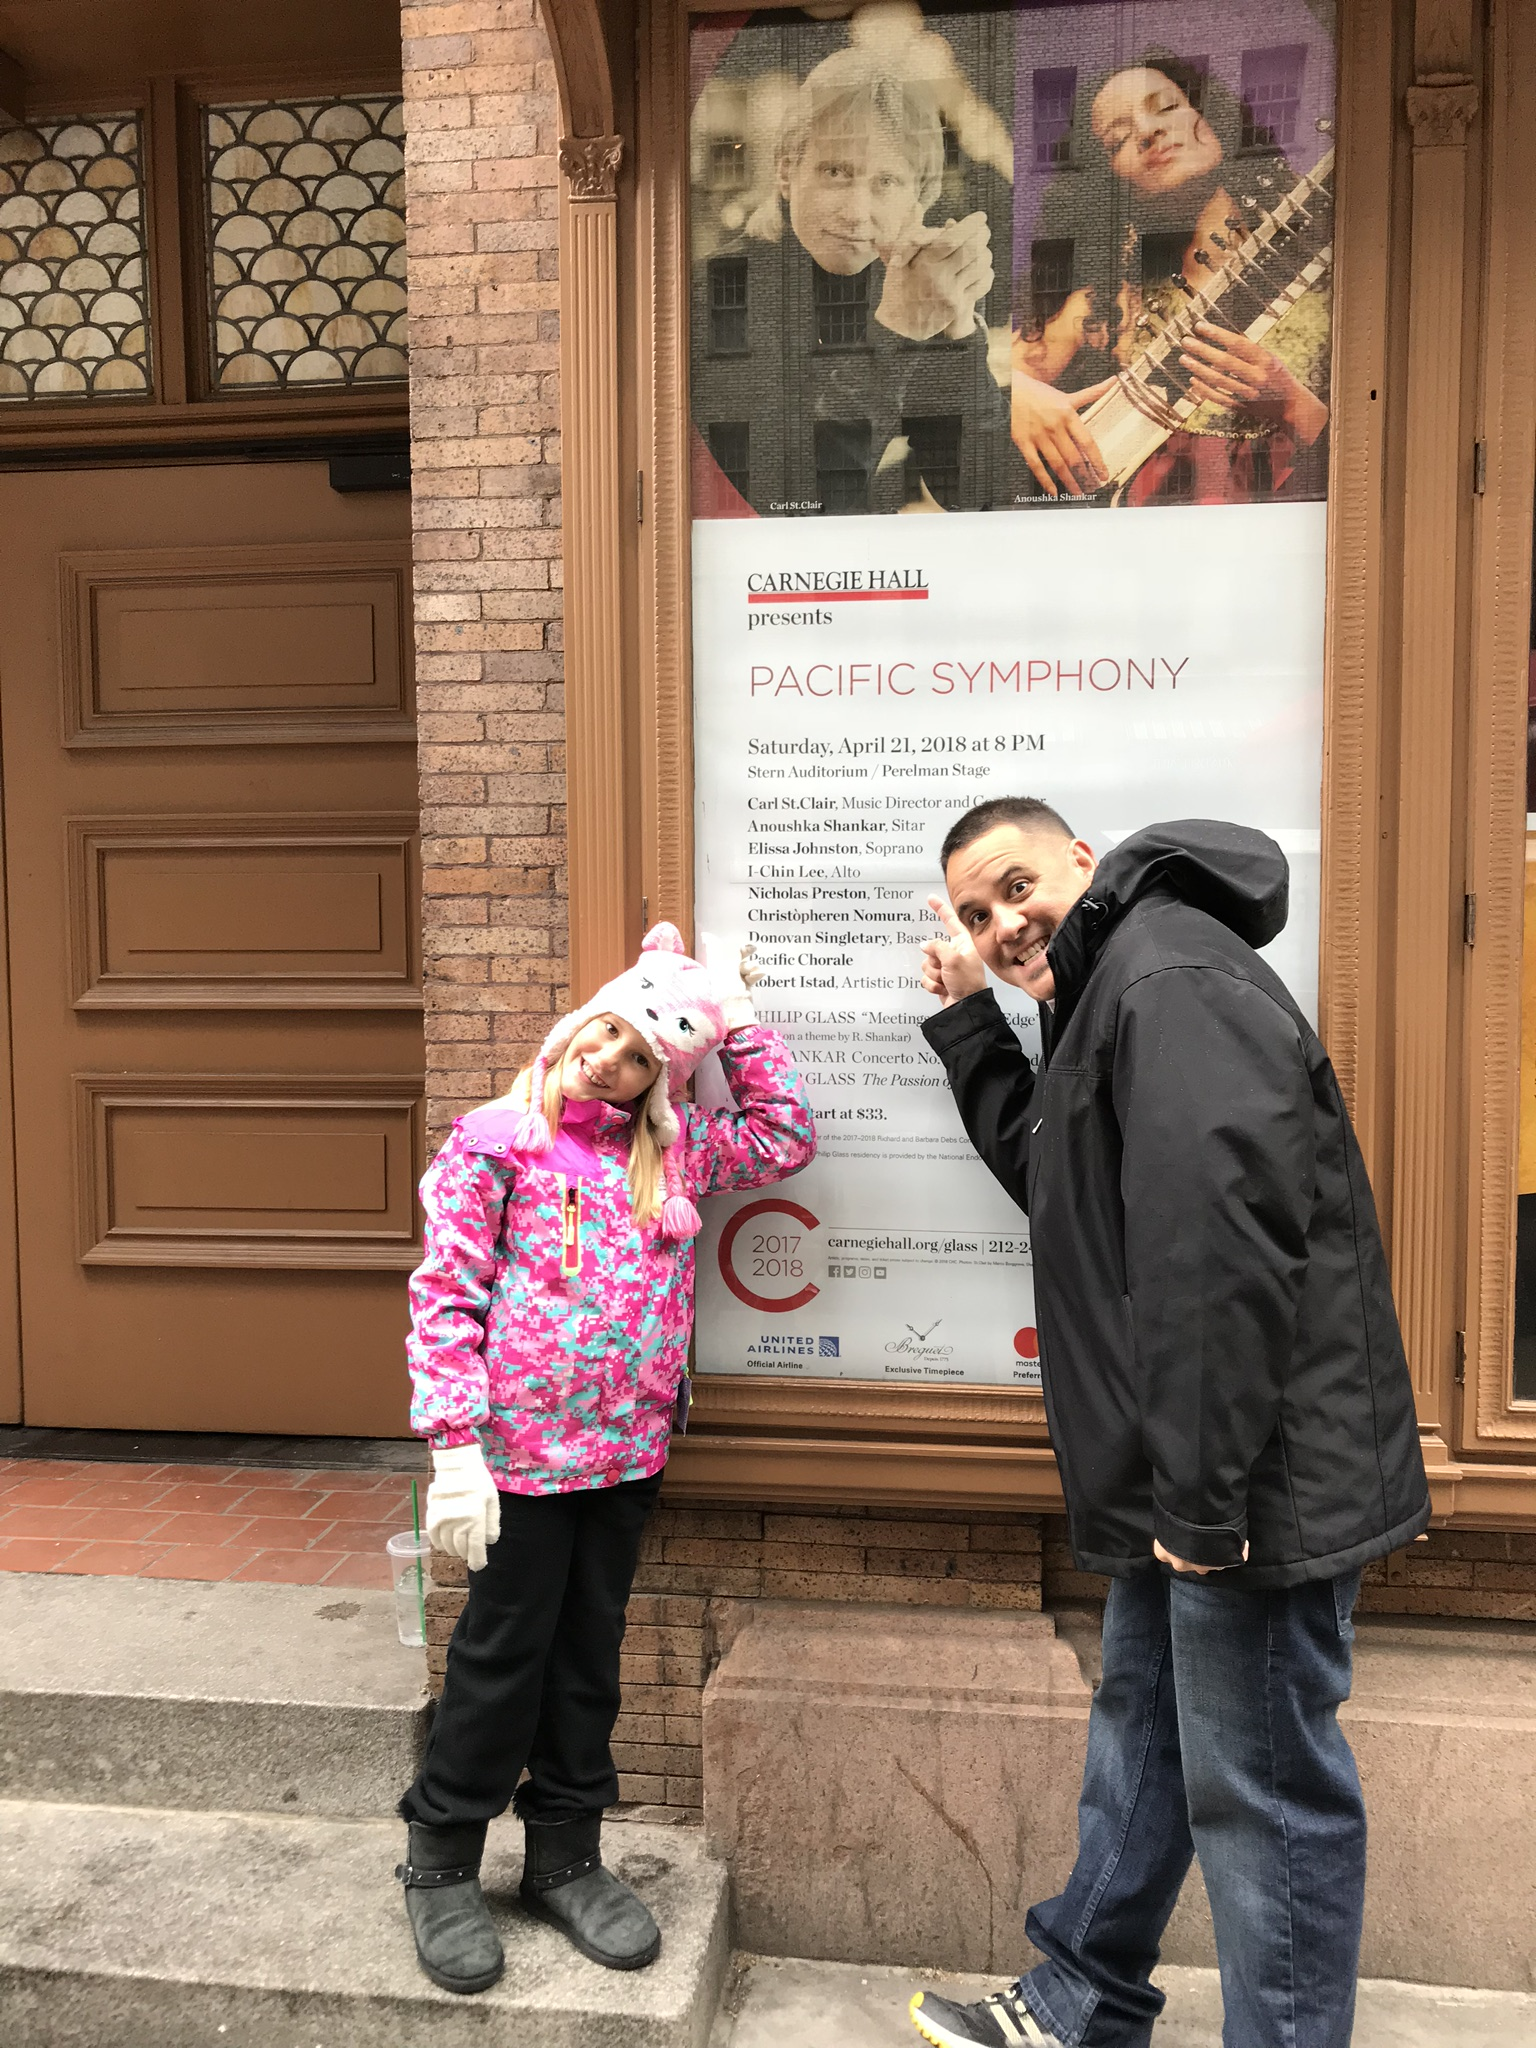 Outside of Carnegie Hall